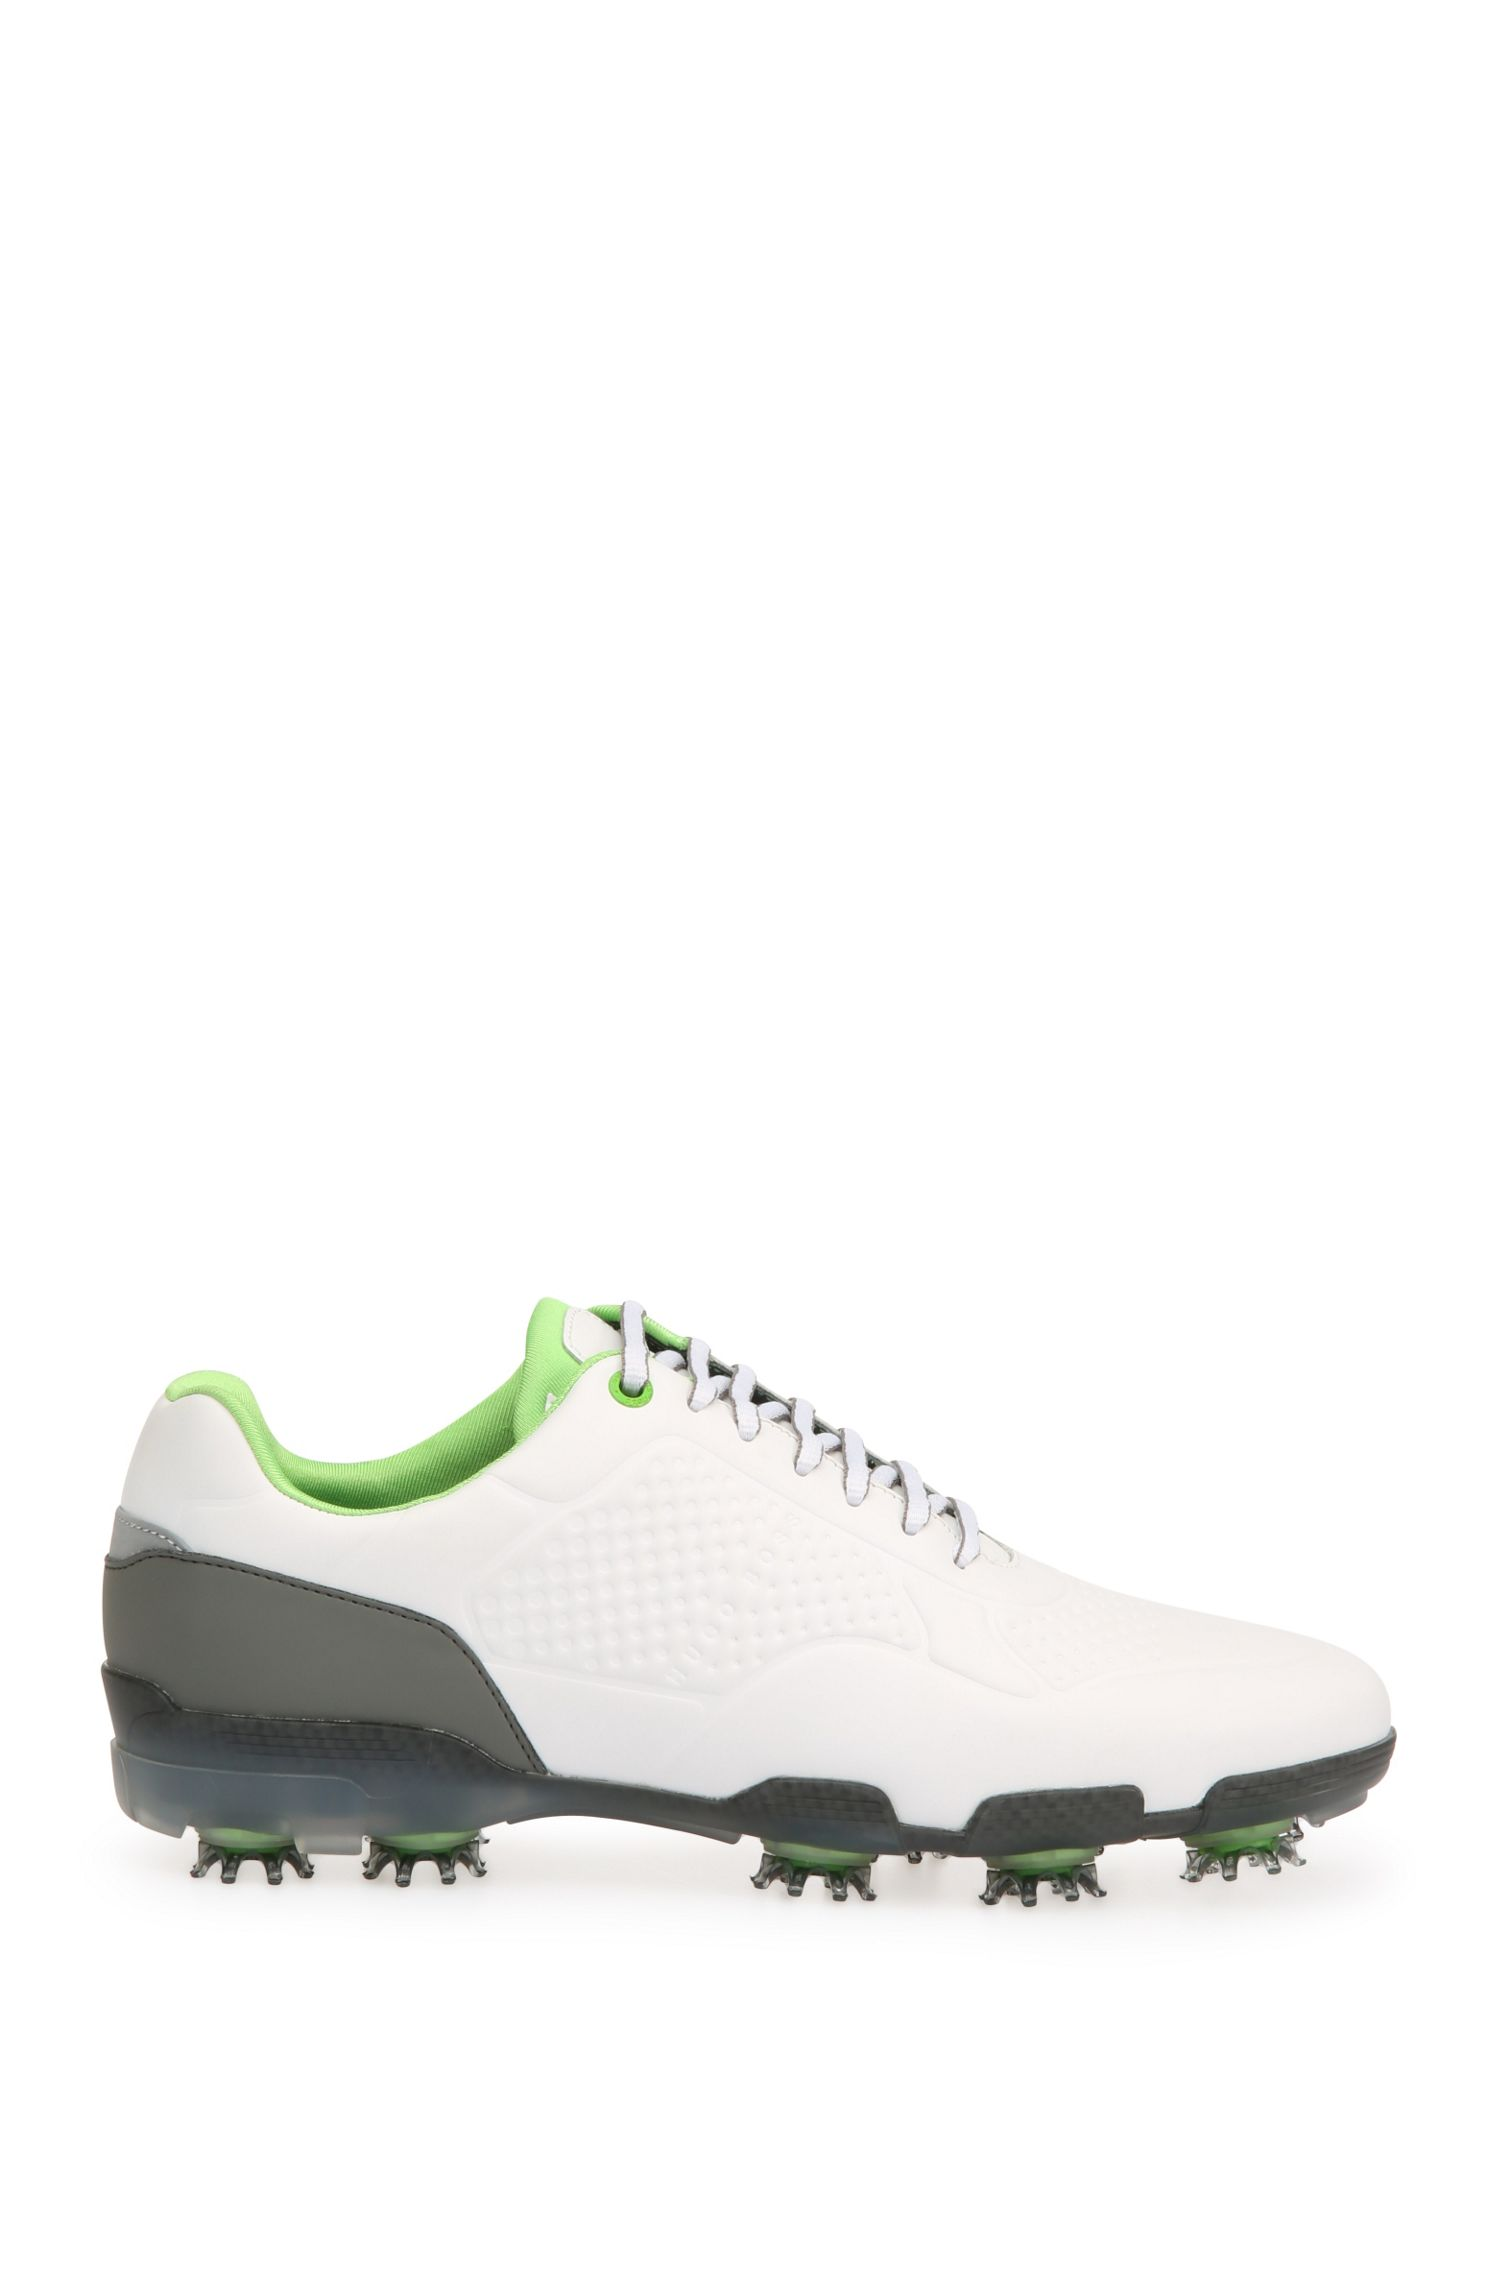 Golf shoes in patterned leather